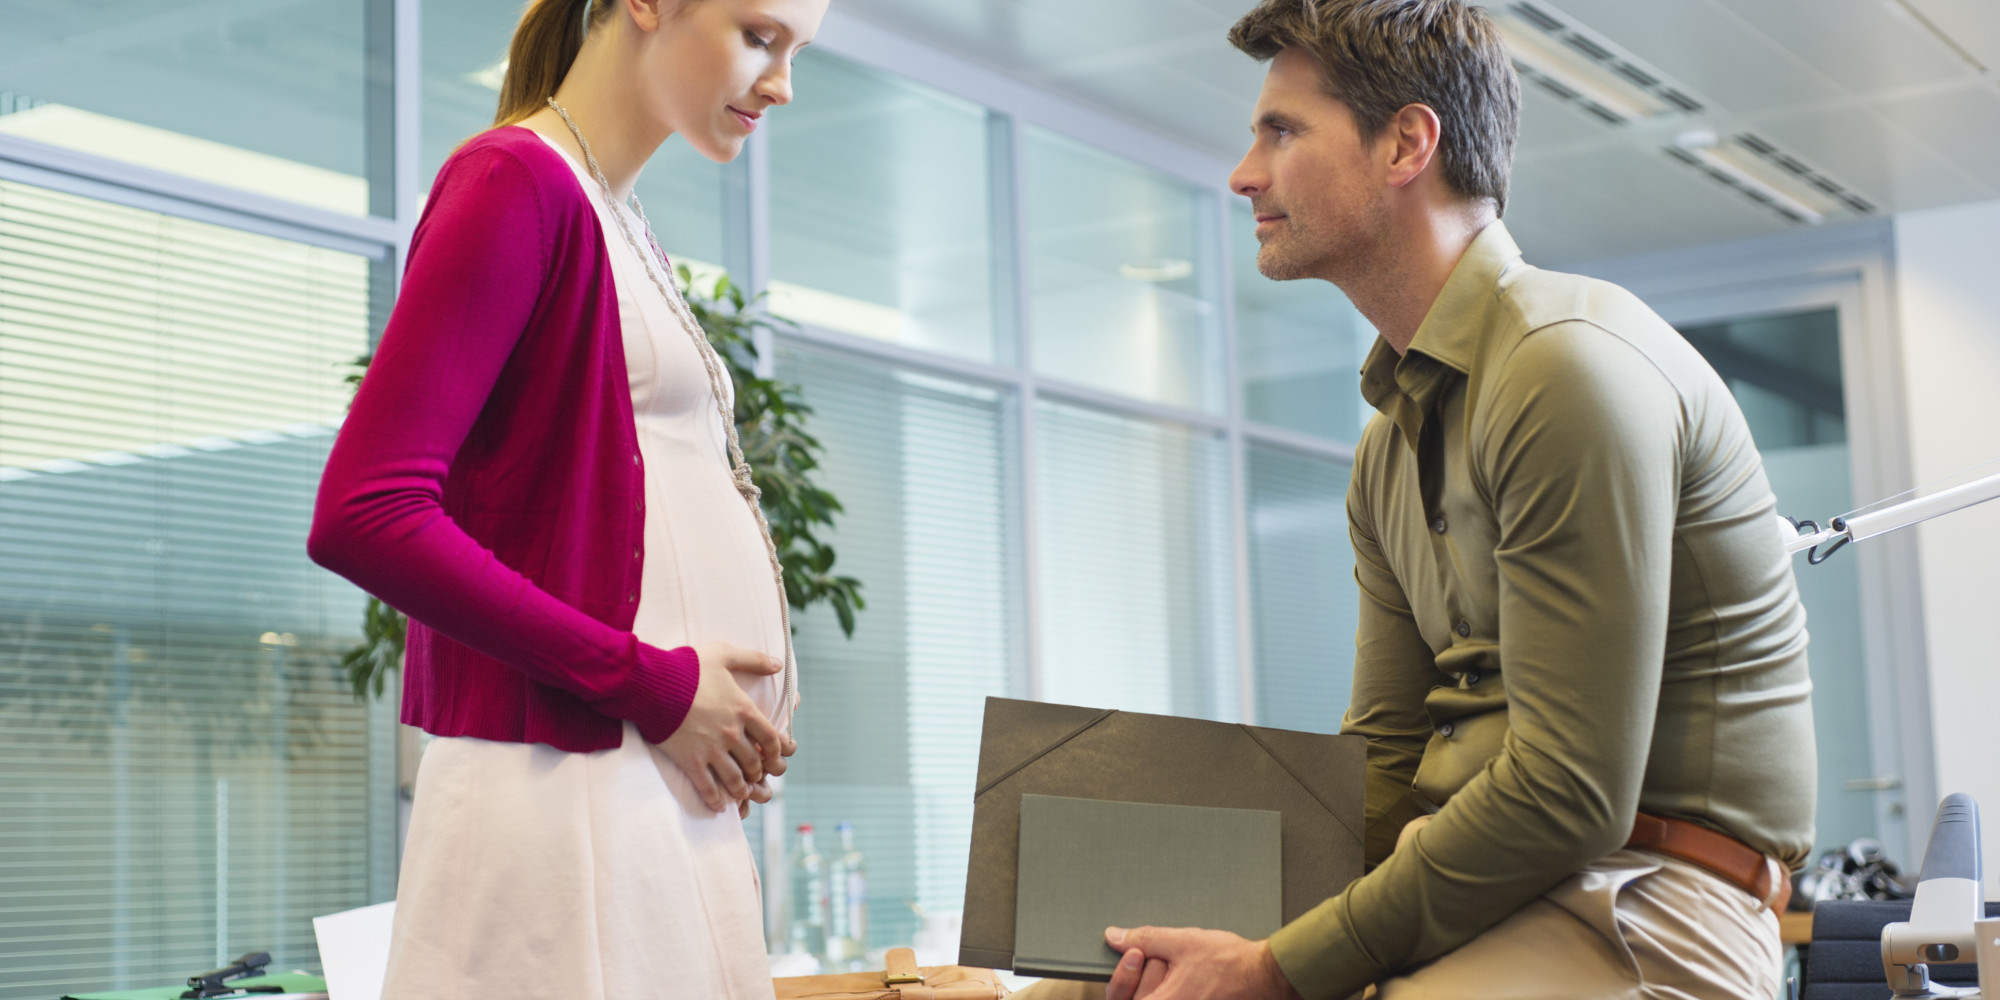 pregnant 5 ways to protect yourself from discrimination at work pregnant 5 ways to protect yourself from discrimination at work the huffington post